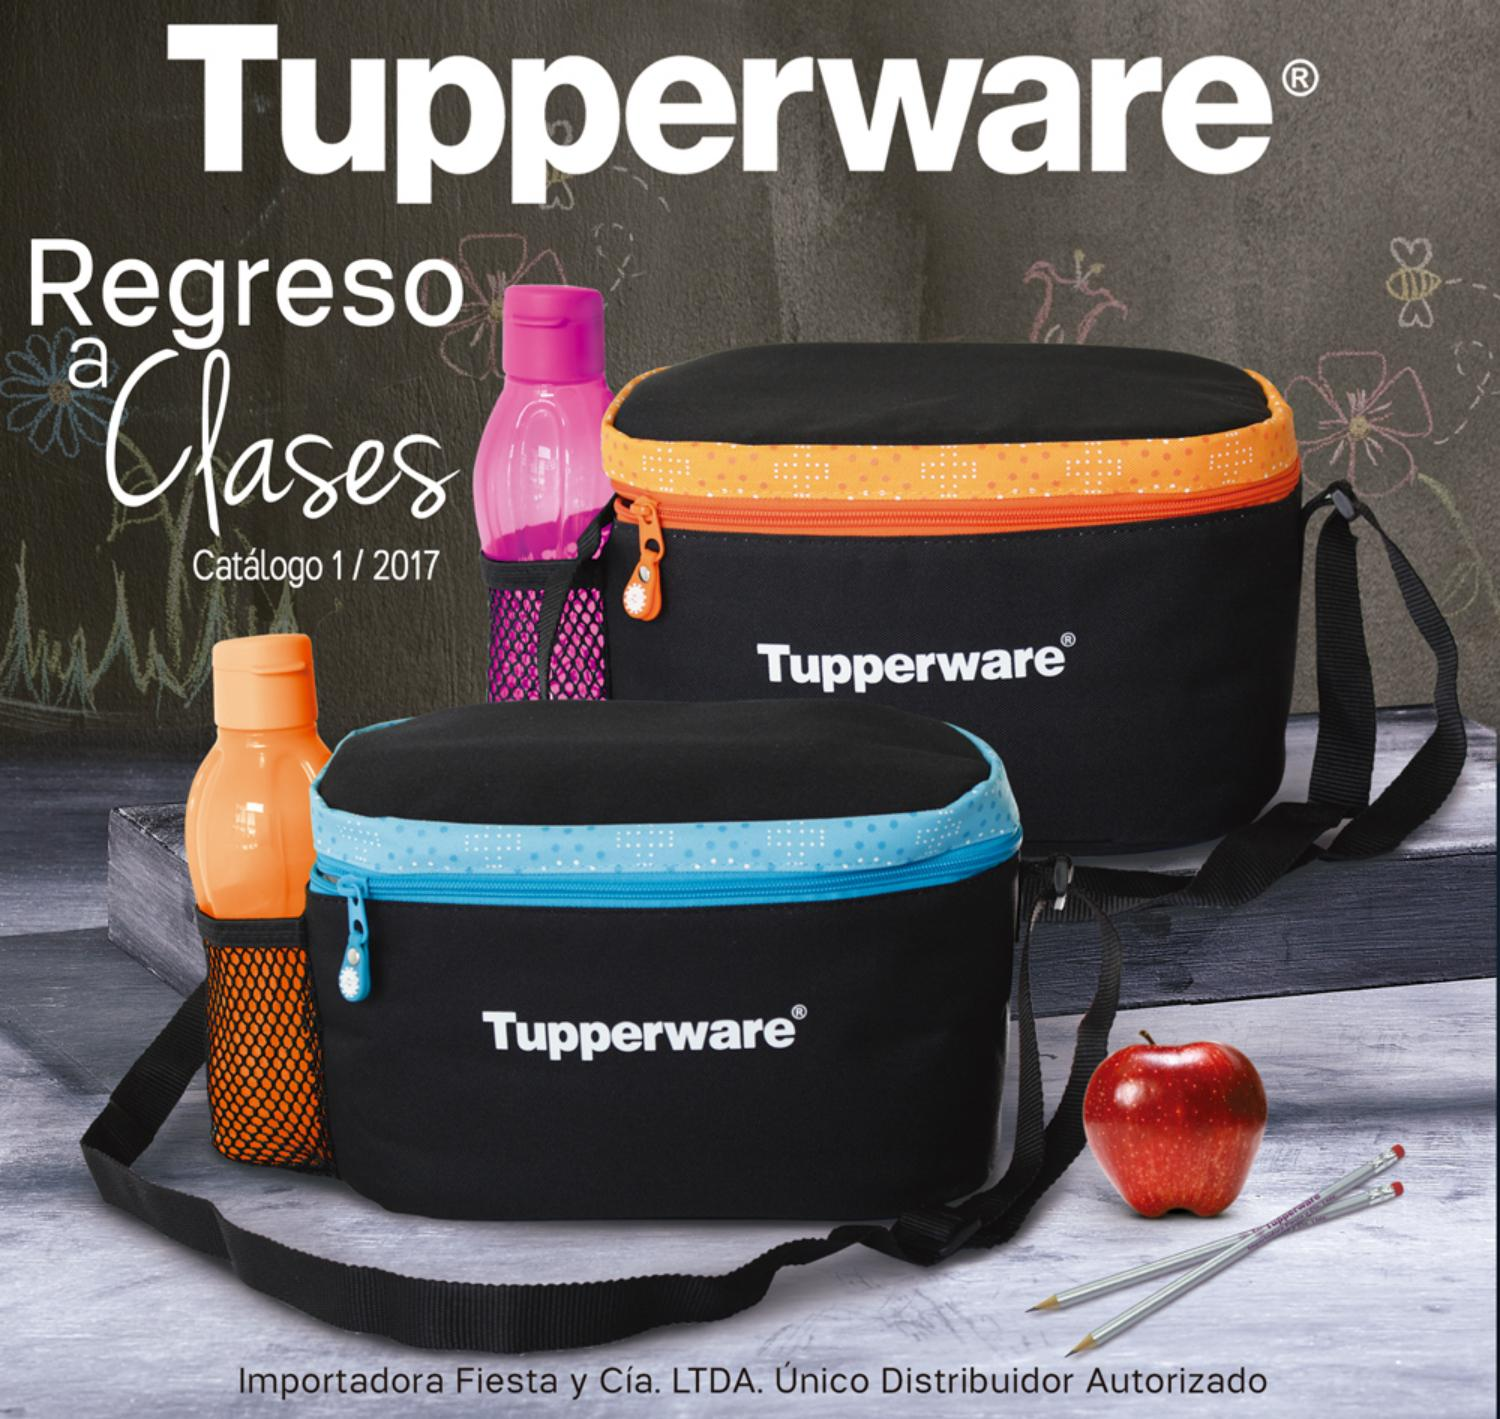 Cat logo 2017 tupperware guatemala by tupperware for Catalogo bricoman elmas 2017